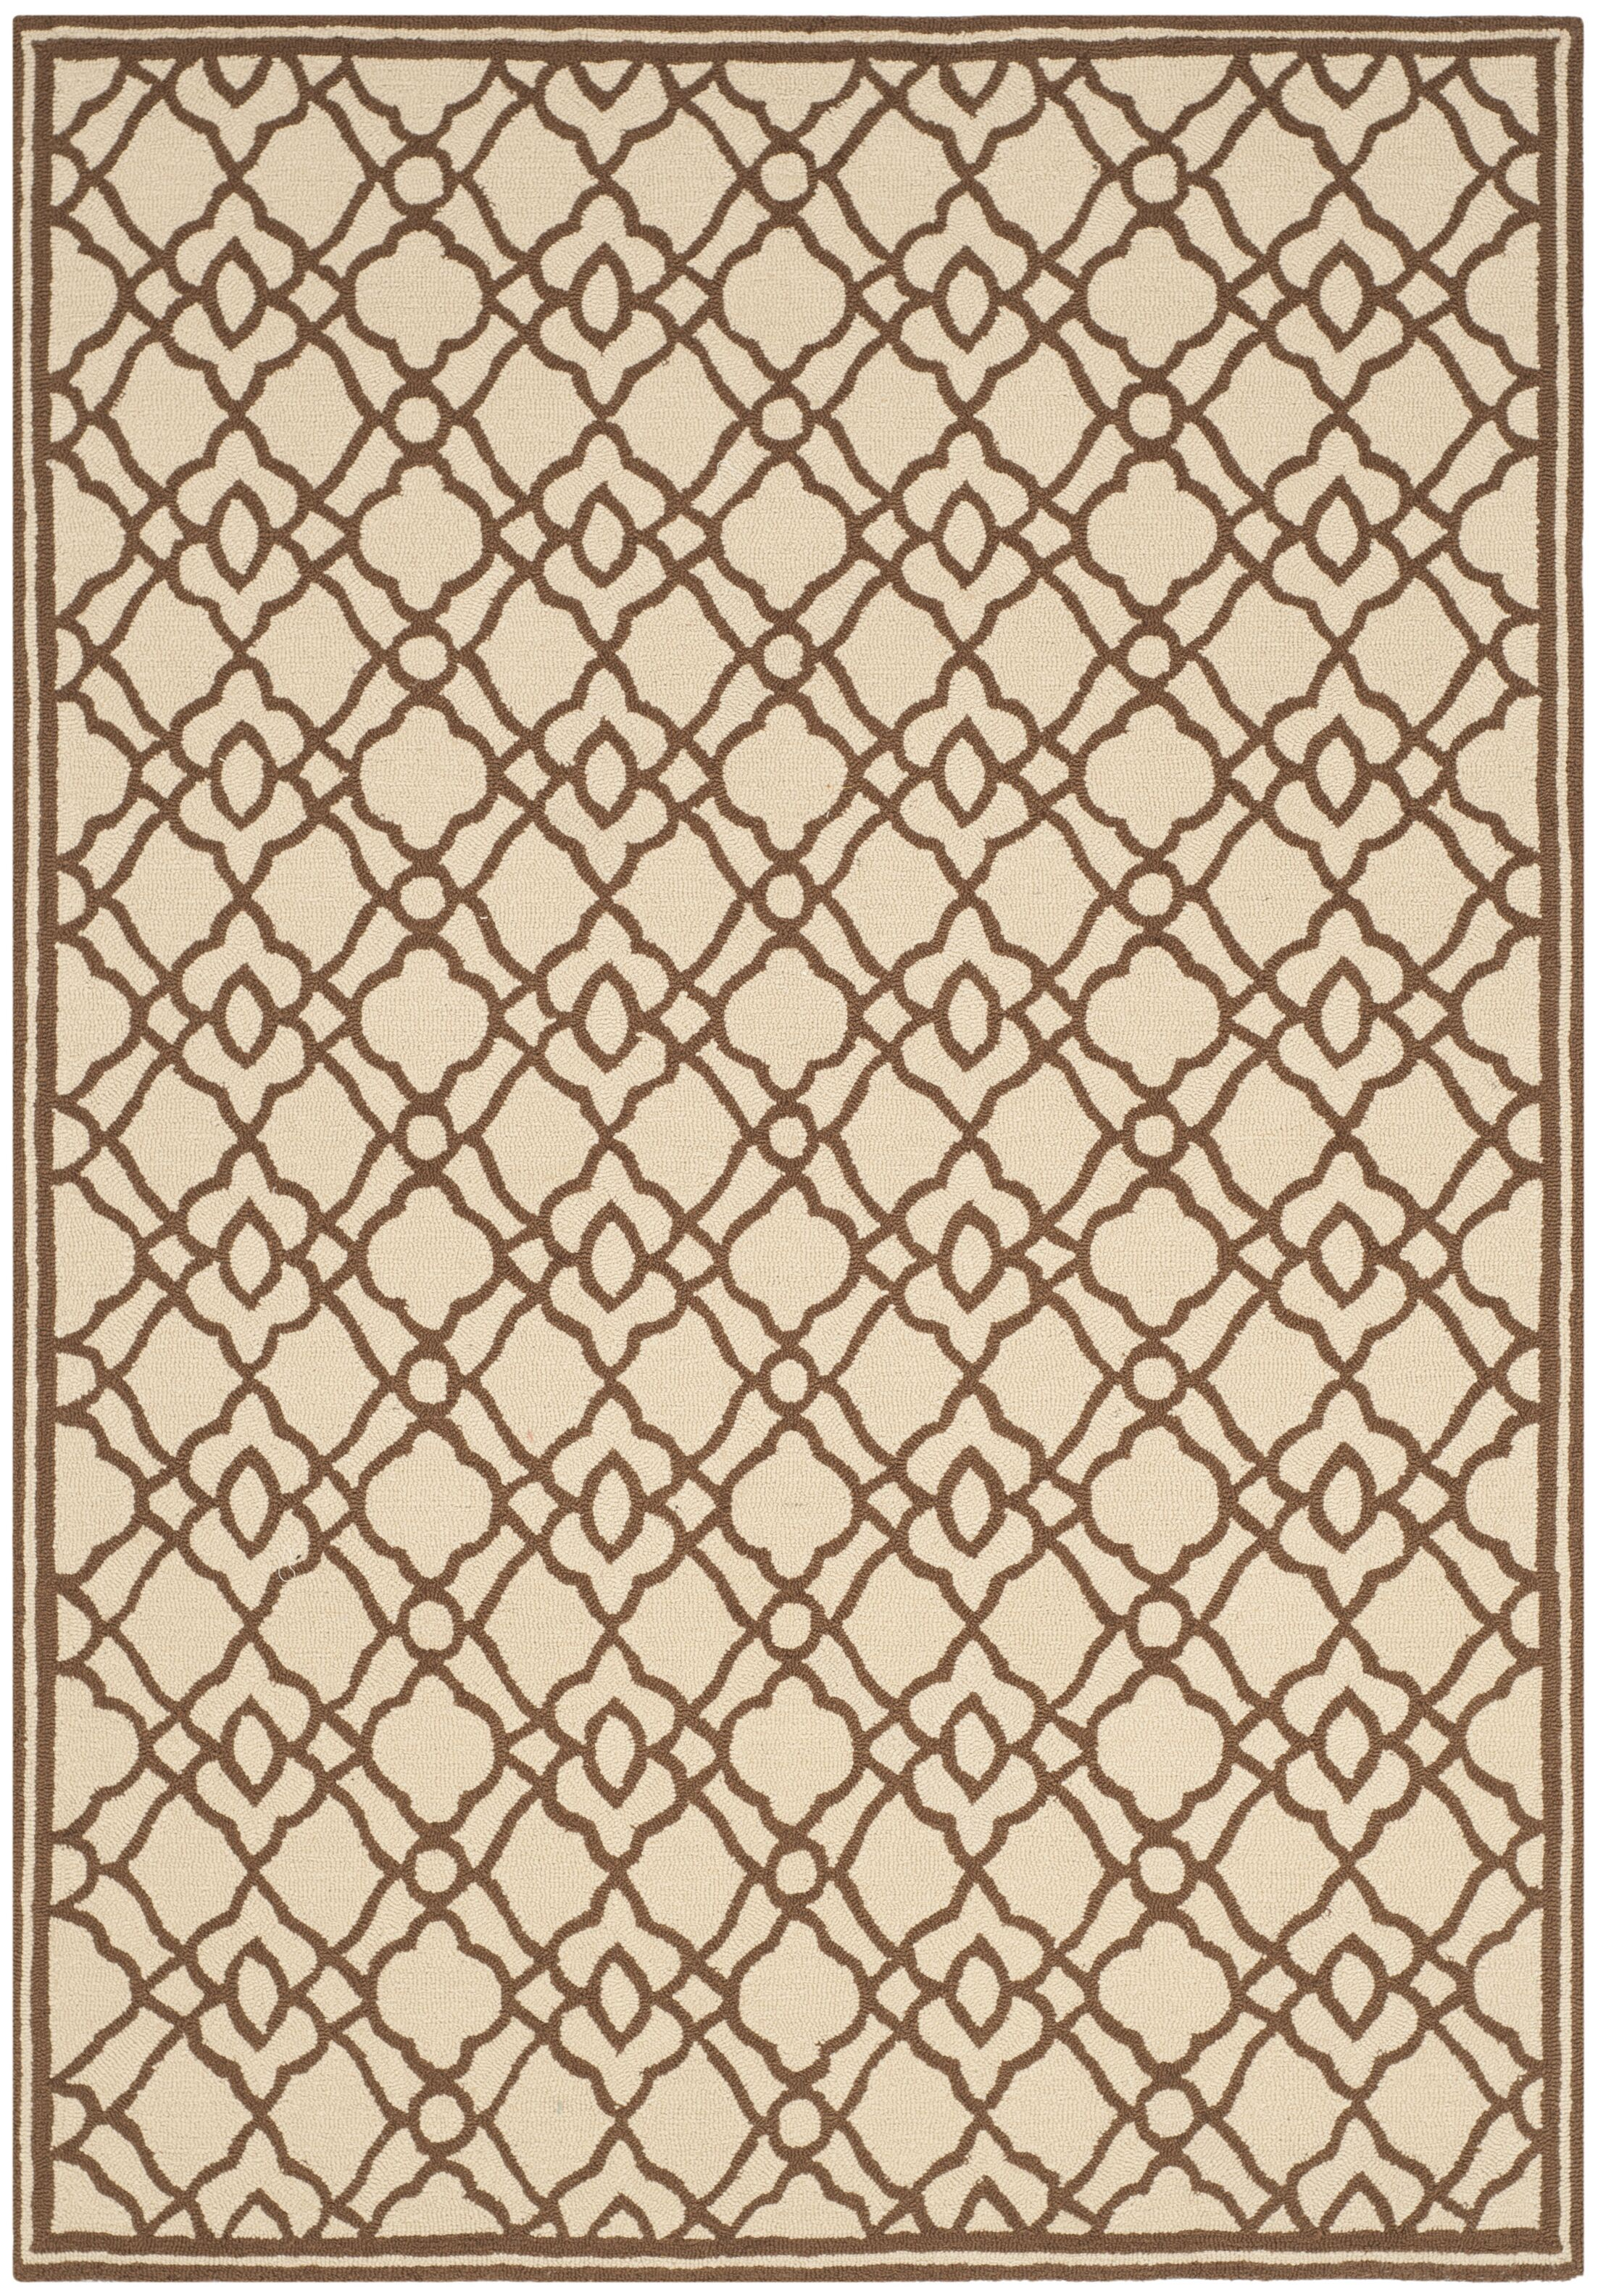 Childers Hand-Hooked Ivory / Dark Brown Area Rug Rug Size: Rectangle 8' x 10'